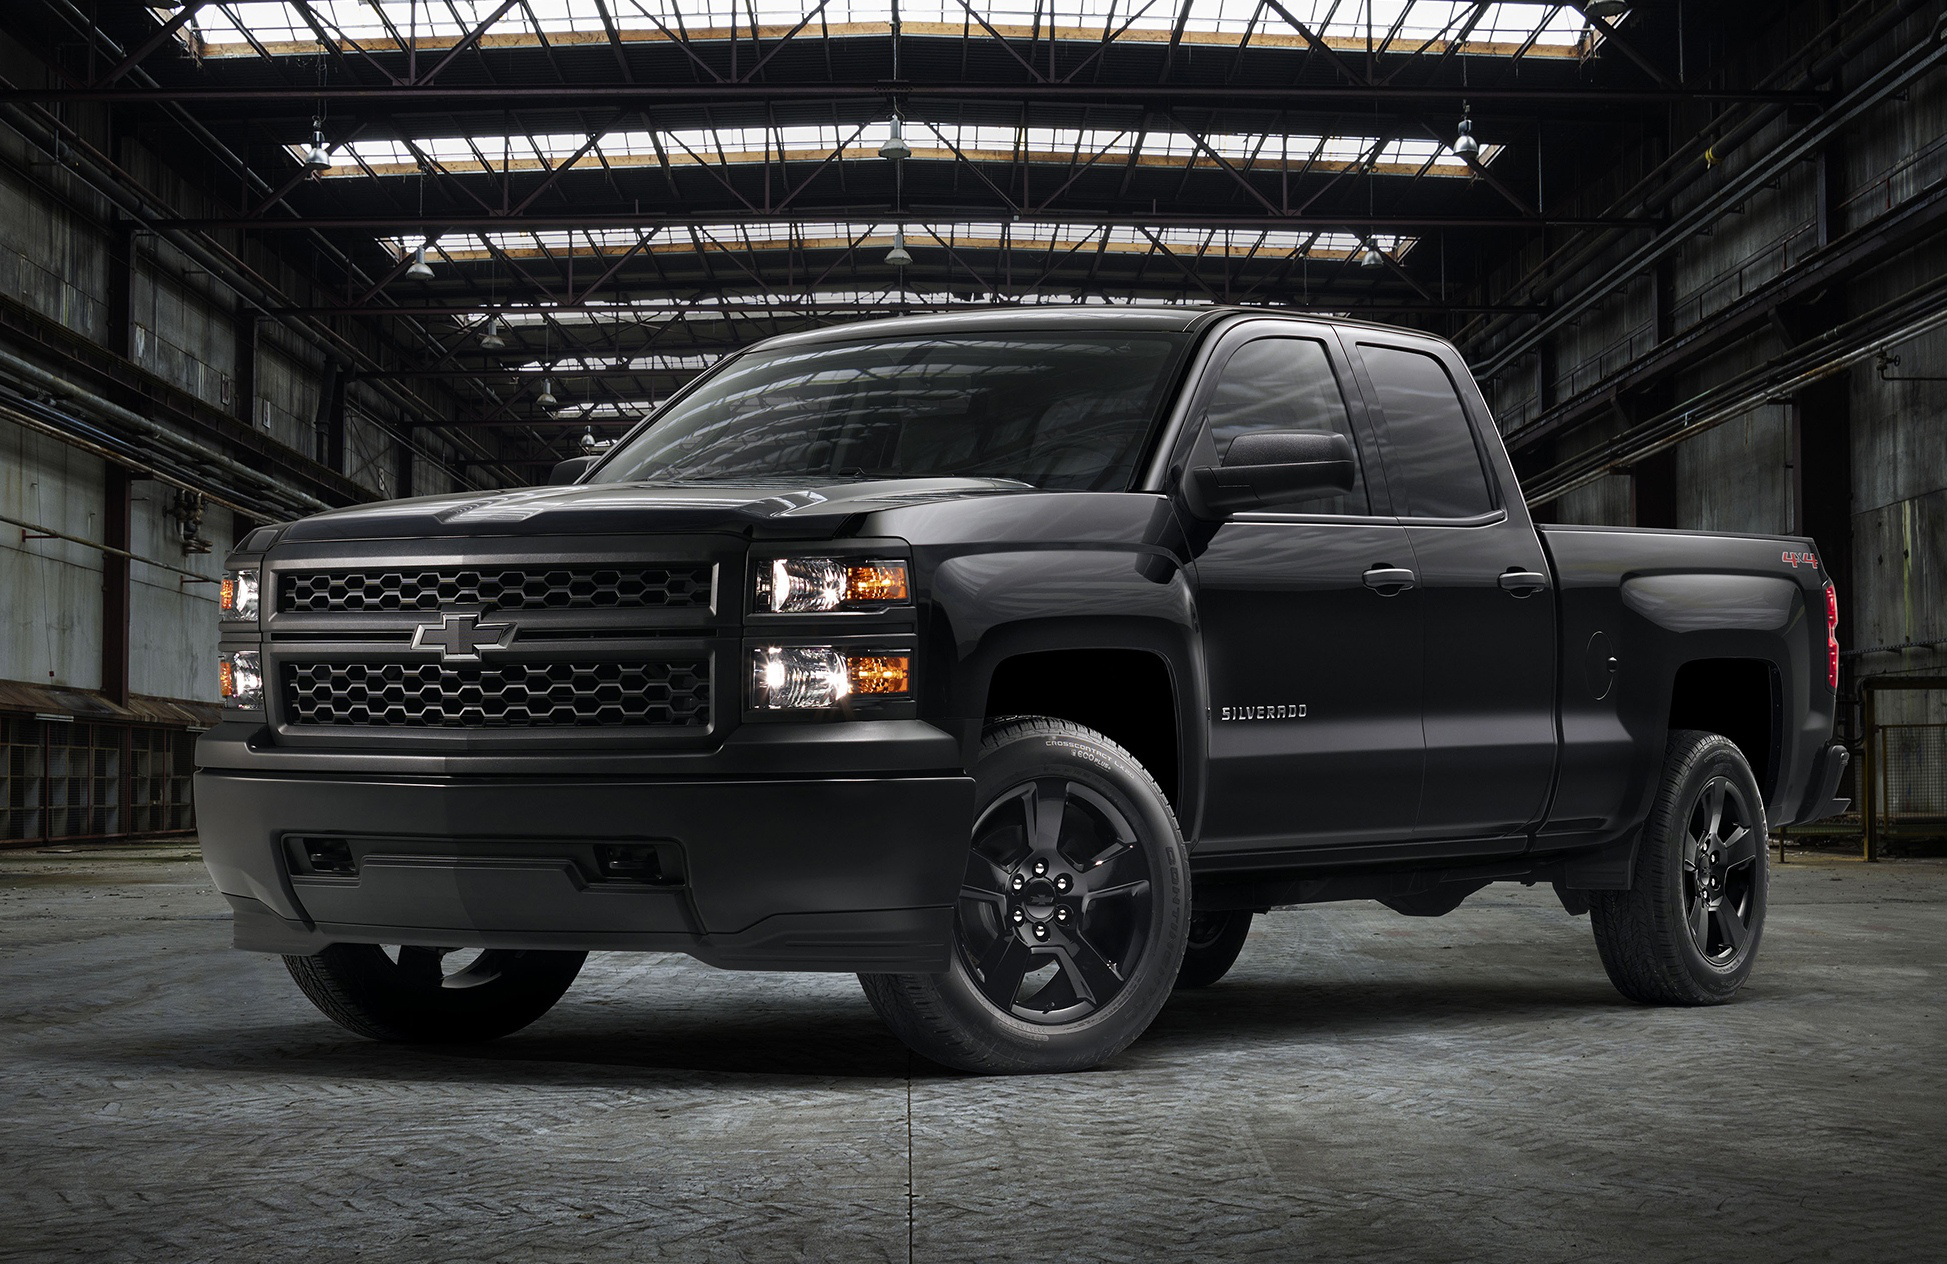 Chevy Silverado Work Trucks Get Black-Out Package | Medium ...